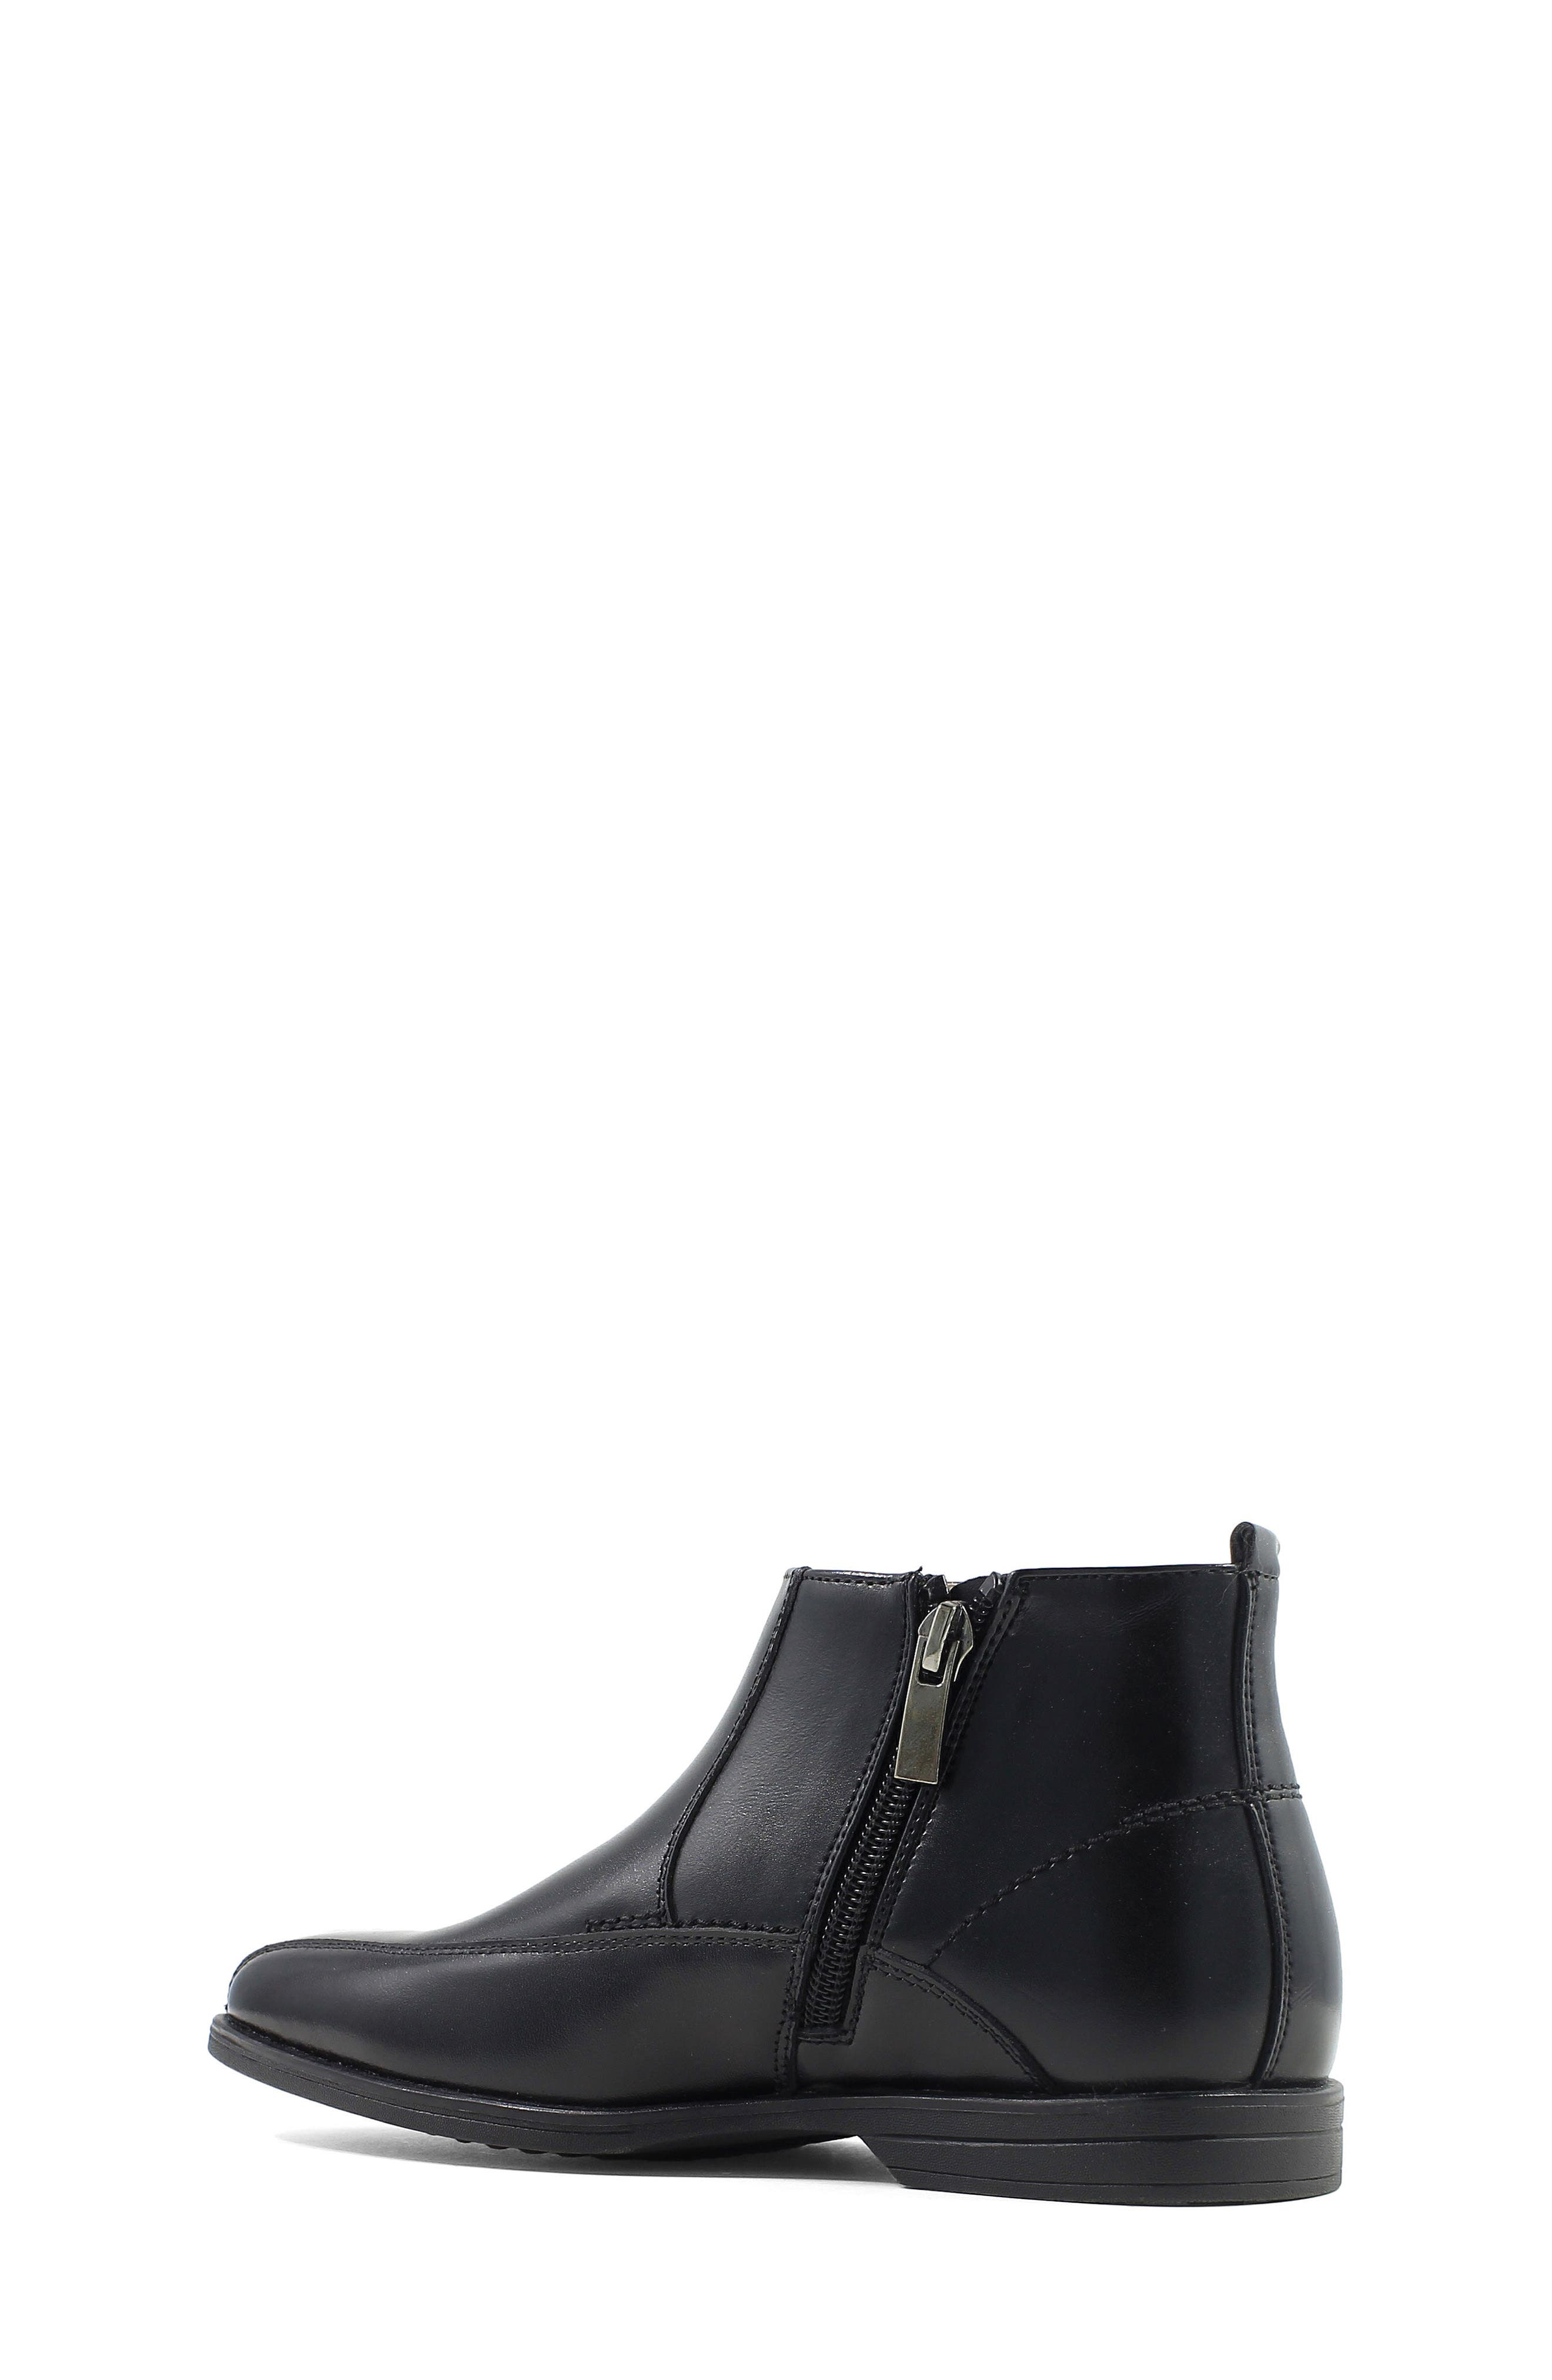 Reveal Chelsea Boot,                             Alternate thumbnail 3, color,                             BLACK